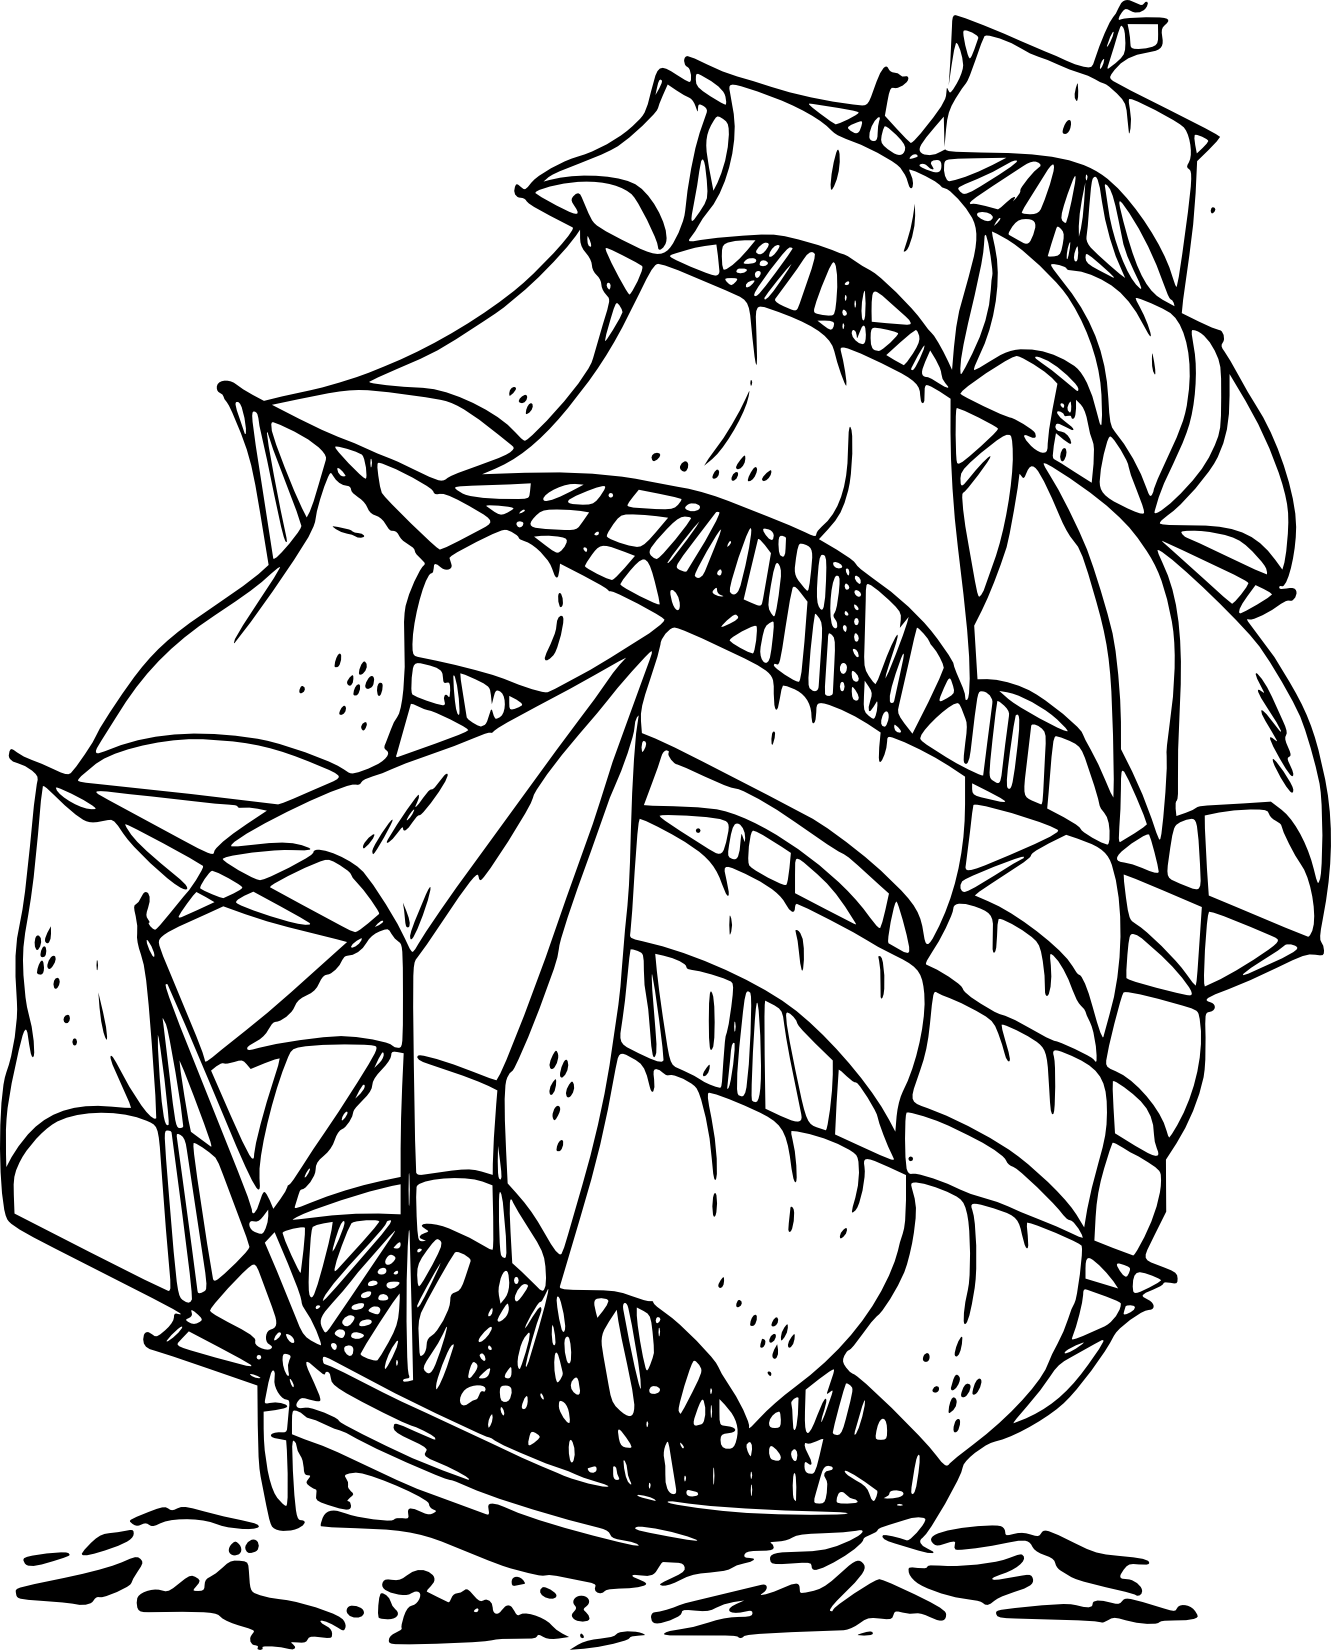 Clipart anchor pirate ship. Black and white panda